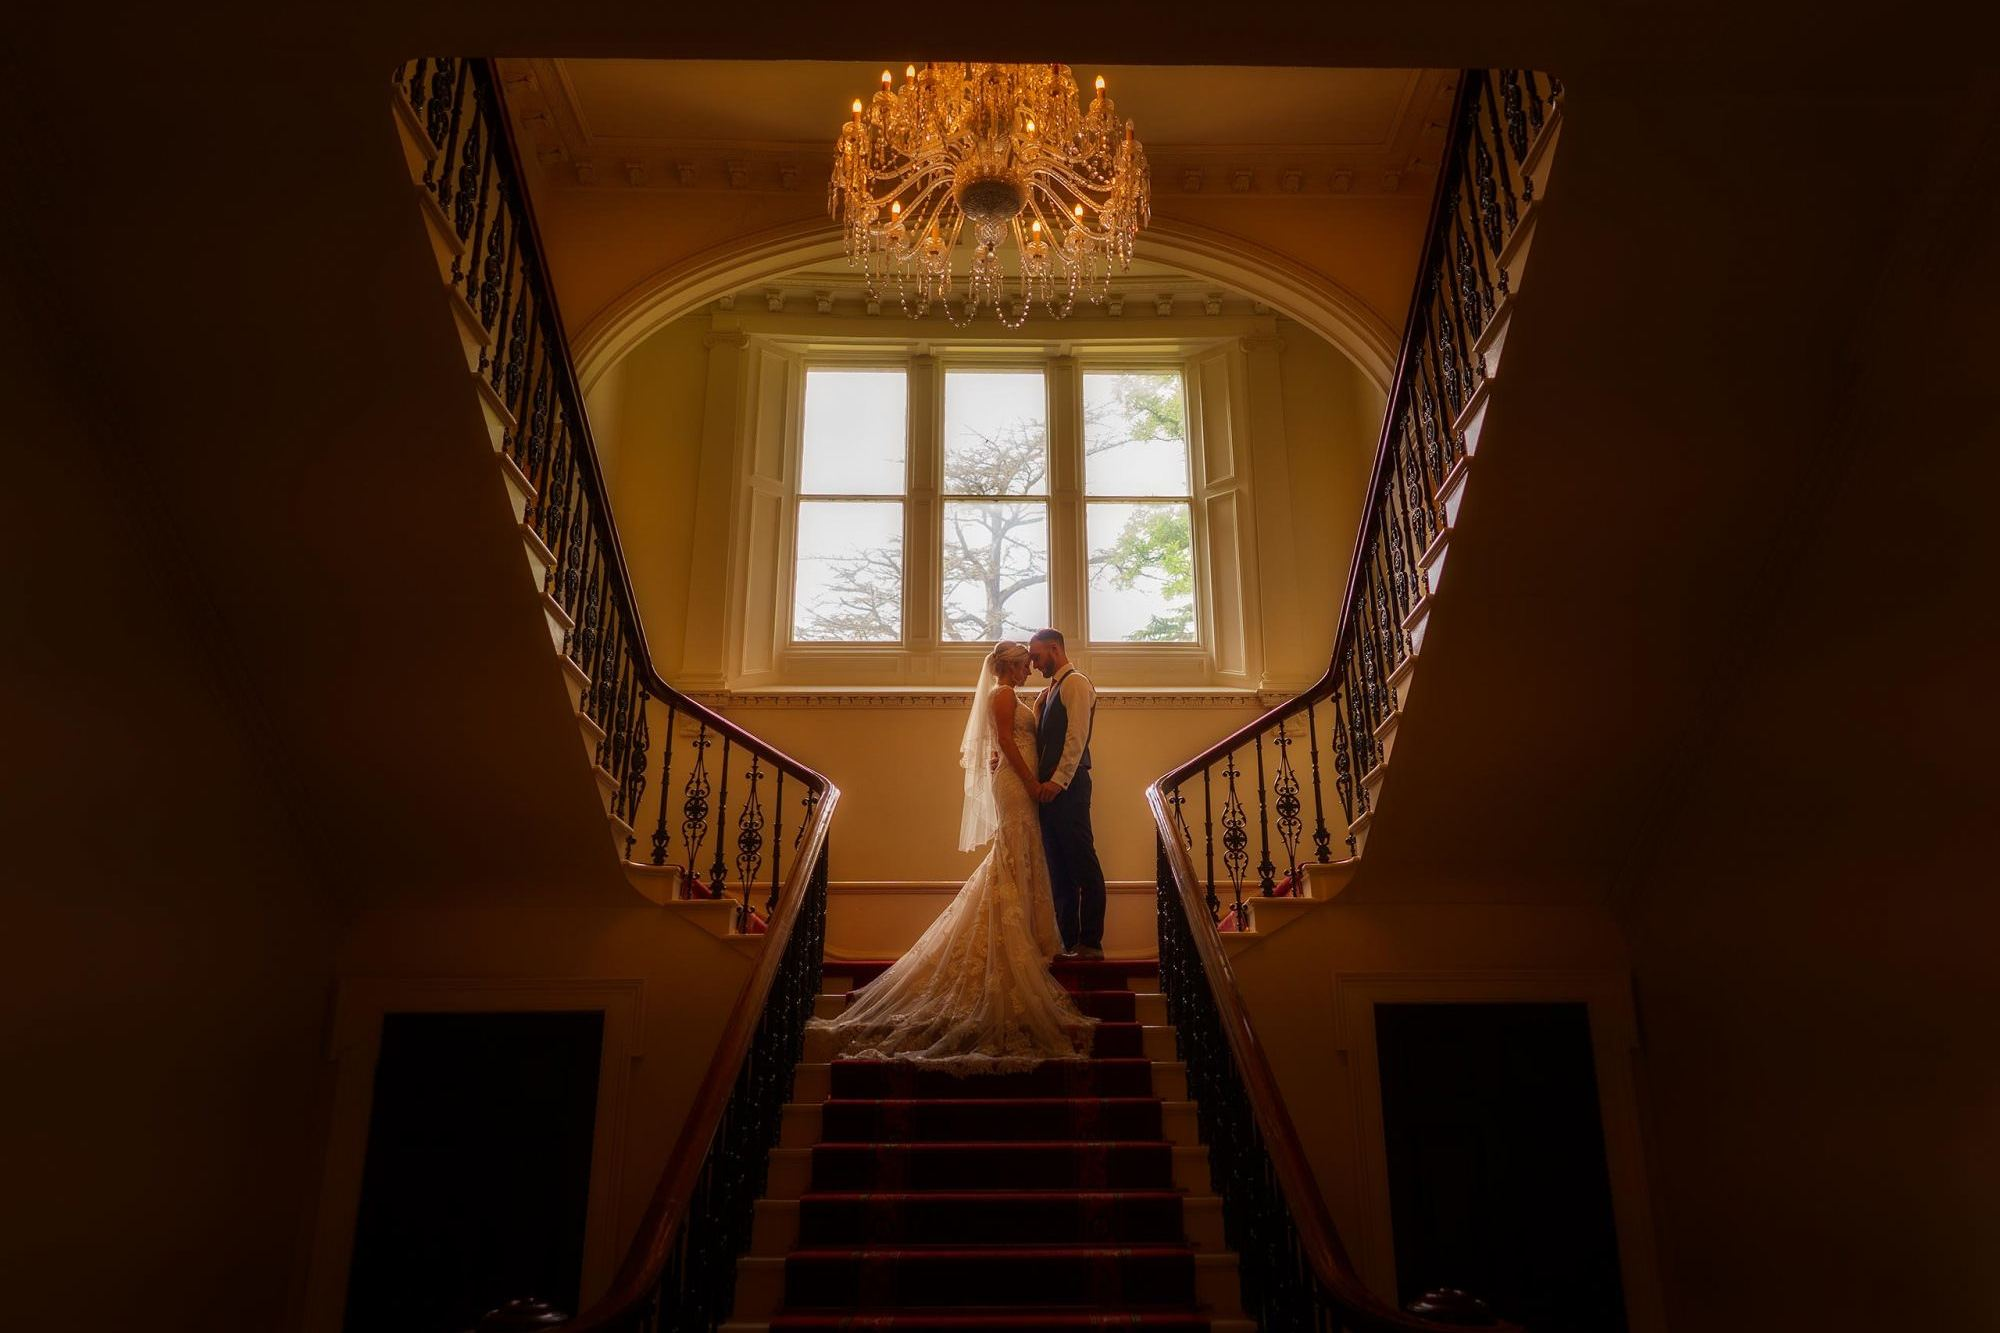 wedding photographer in shropshire captures beautiful artistic portrait of bride and groom